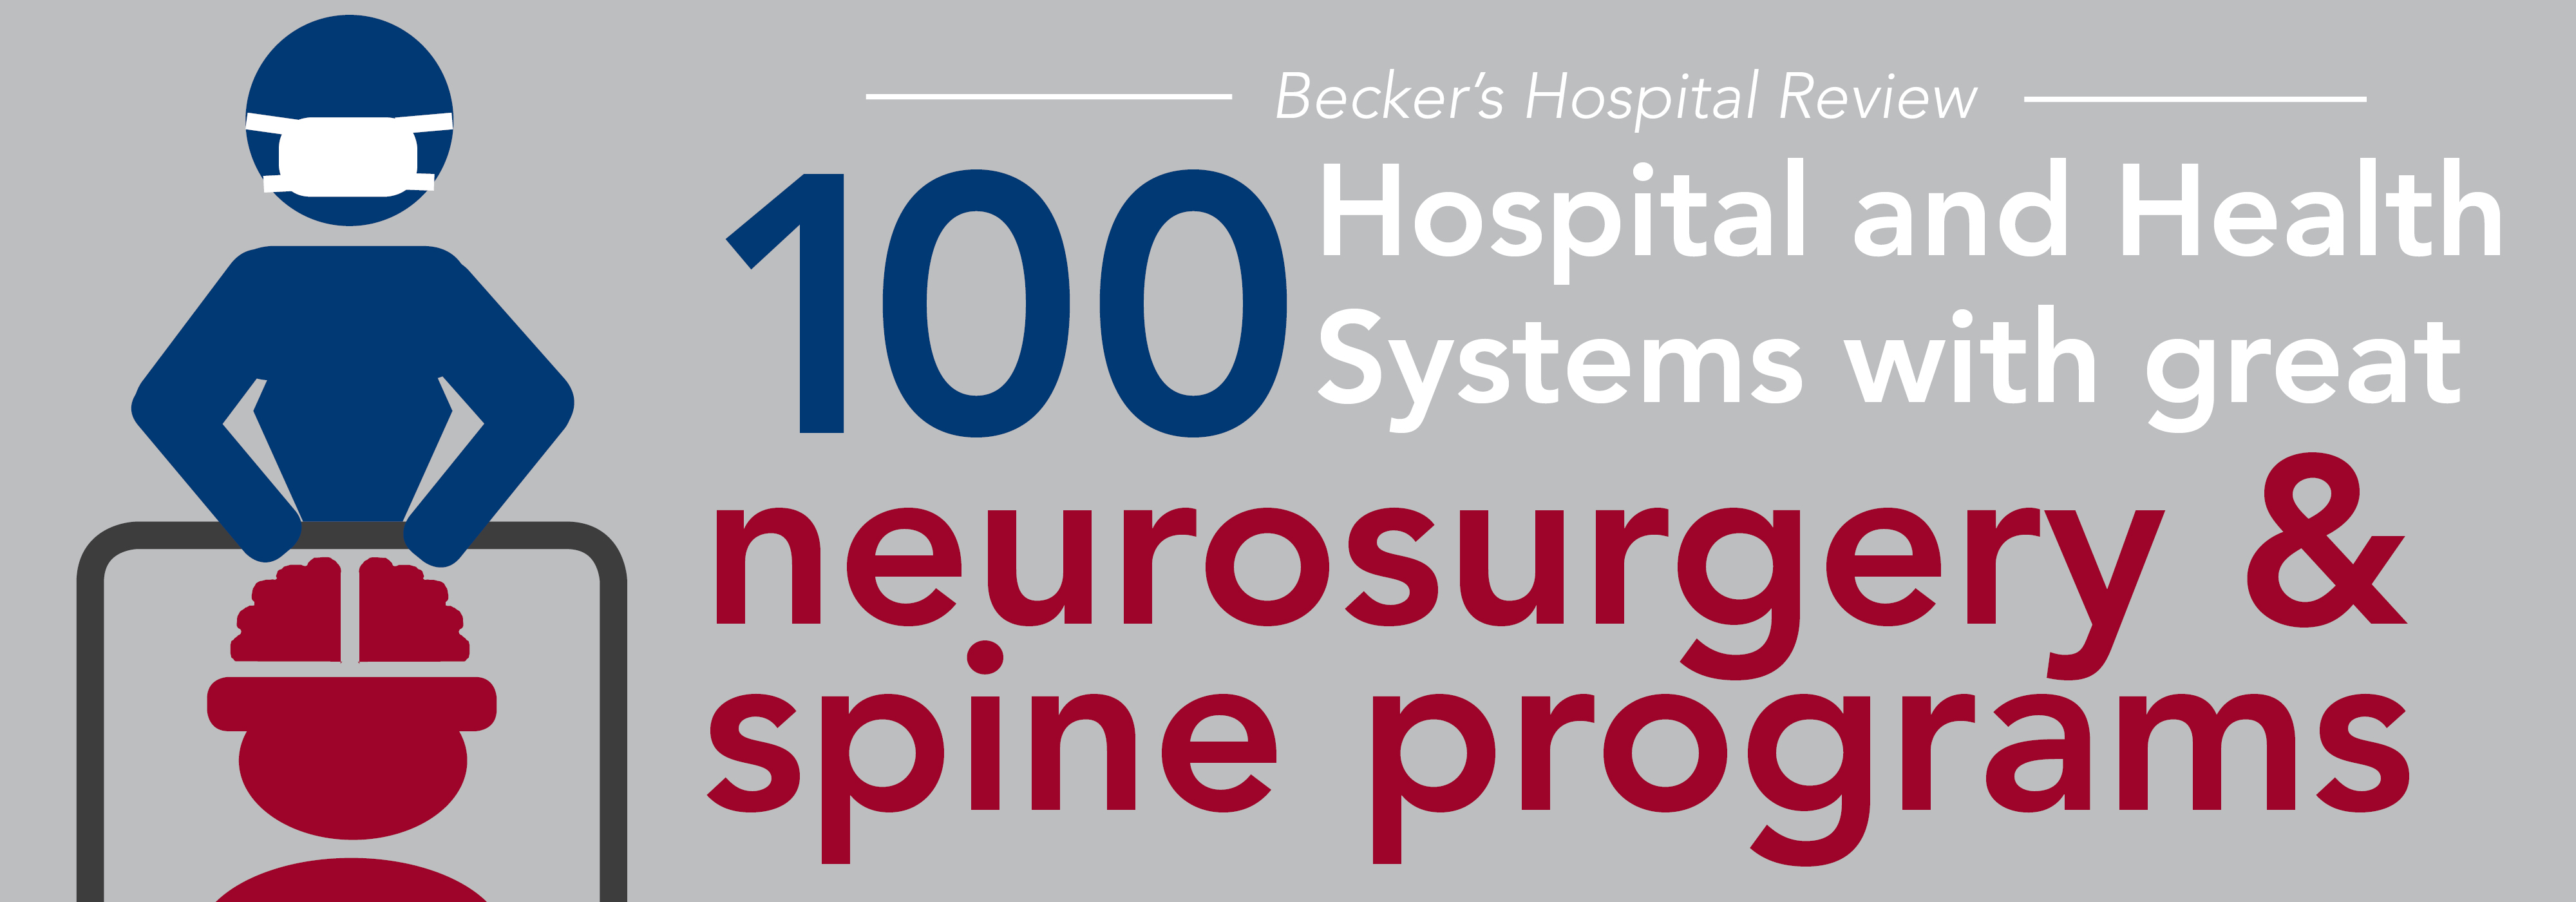 100 hospitals & health systems with great neurosurgery and